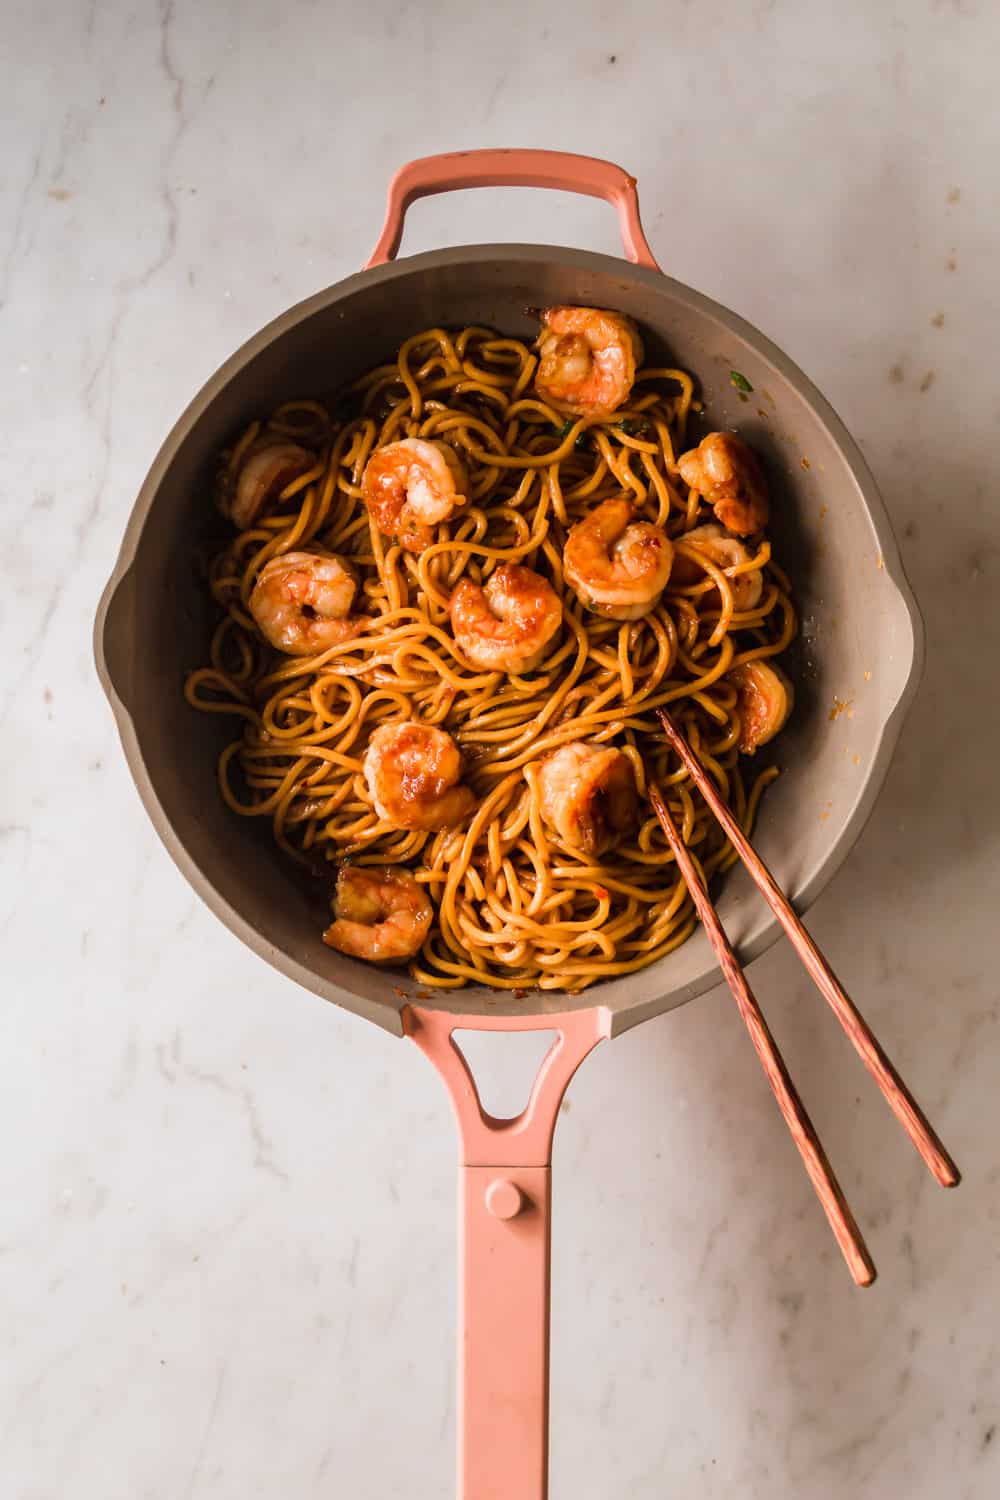 Large pan with long, thin noodles, shrimp, and chopsticks.